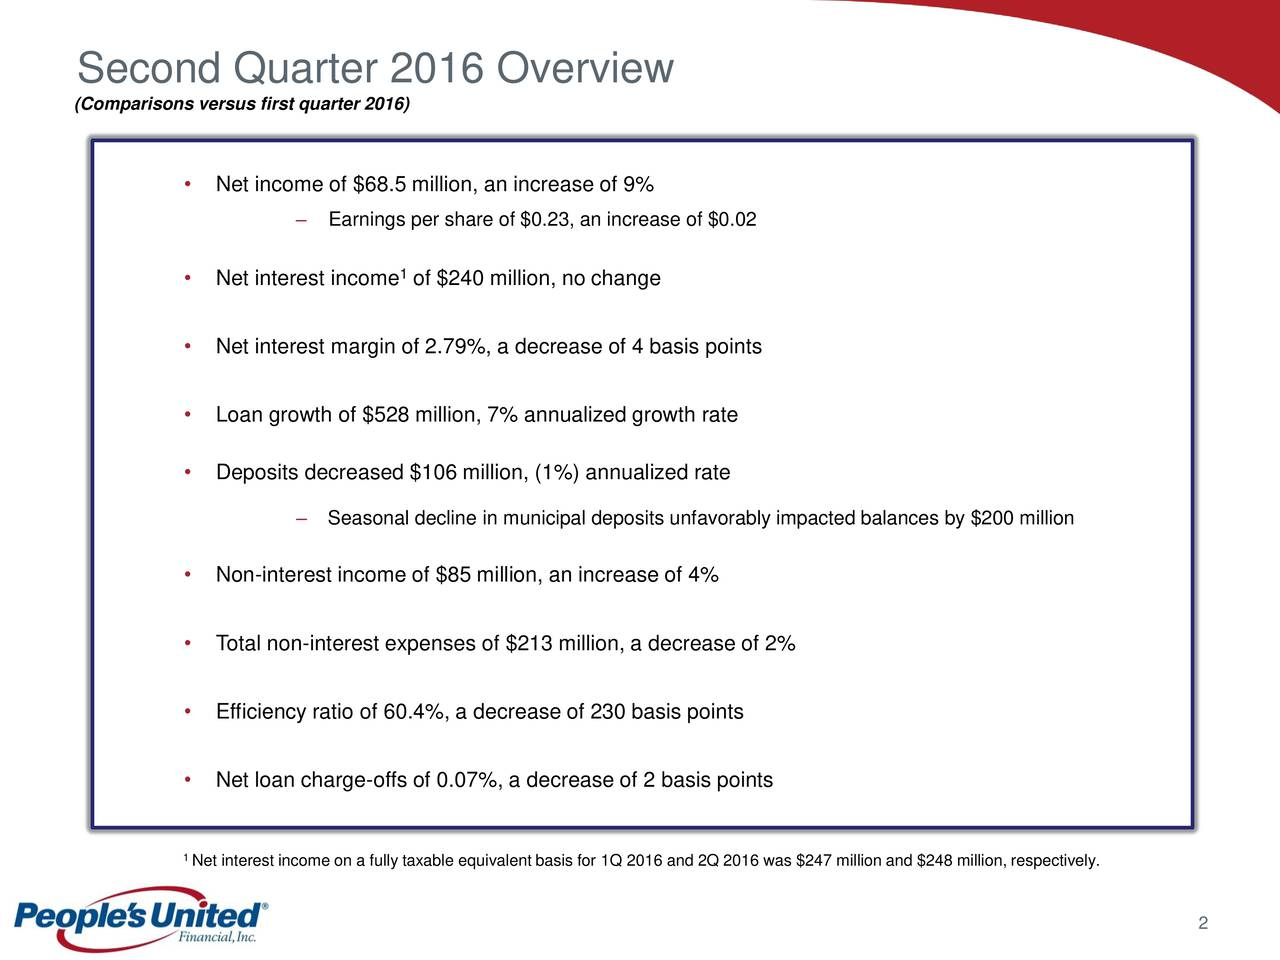 (Comparisons versus first quarter 2016) Net income of $68.5 million, an increase of 9% Earnings per share of $0.23, an increase of $0.02 1 Net interest income of $240 million, no change Net interest margin of 2.79%, a decrease of 4 basis points Loan growth of $528 million, 7% annualized growth rate Deposits decreased $106 million, (1%) annualized rate Seasonal decline in municipal deposits unfavorably impacted balances by $200 million Non-interest income of $85 million, an increase of 4% Total non-interest expenses of $213 million, a decrease of 2% Efficiency ratio of 60.4%, a decrease of 230 basis points Net loan charge-offs of 0.07%, a decrease of 2 basis points 1Net interest income on a fully taxable equivalent basis for 1Q 2016 and 2Q 2016 was $247 million and $248 million, respectively. 2